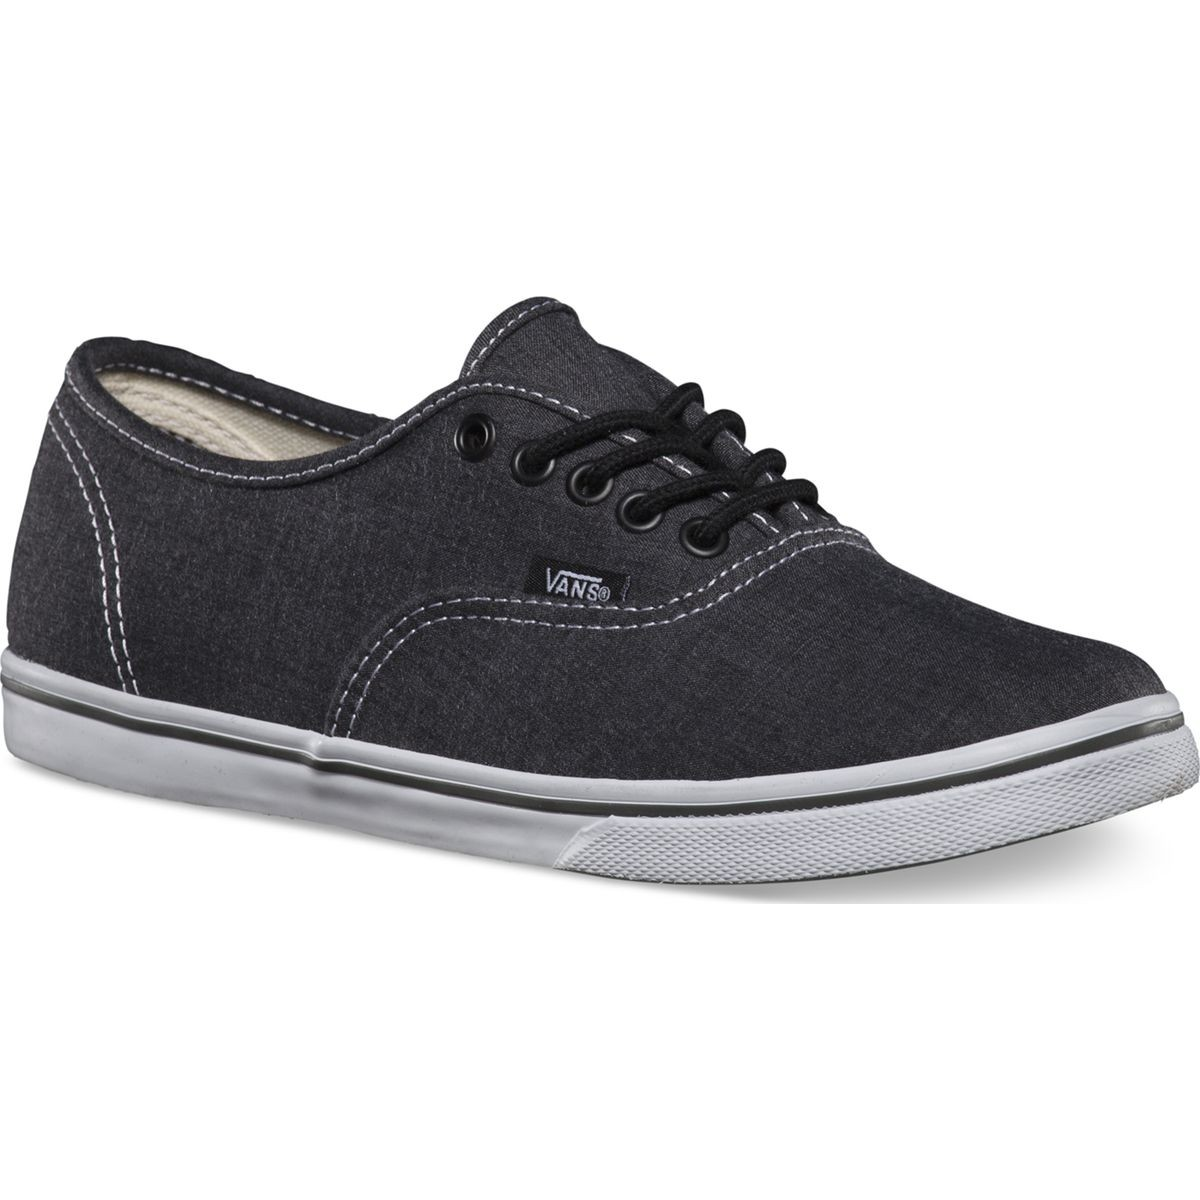 60100bba93 Vans Authentic Lo Pro Chambray Shoes - Charcoal True White - 3.5